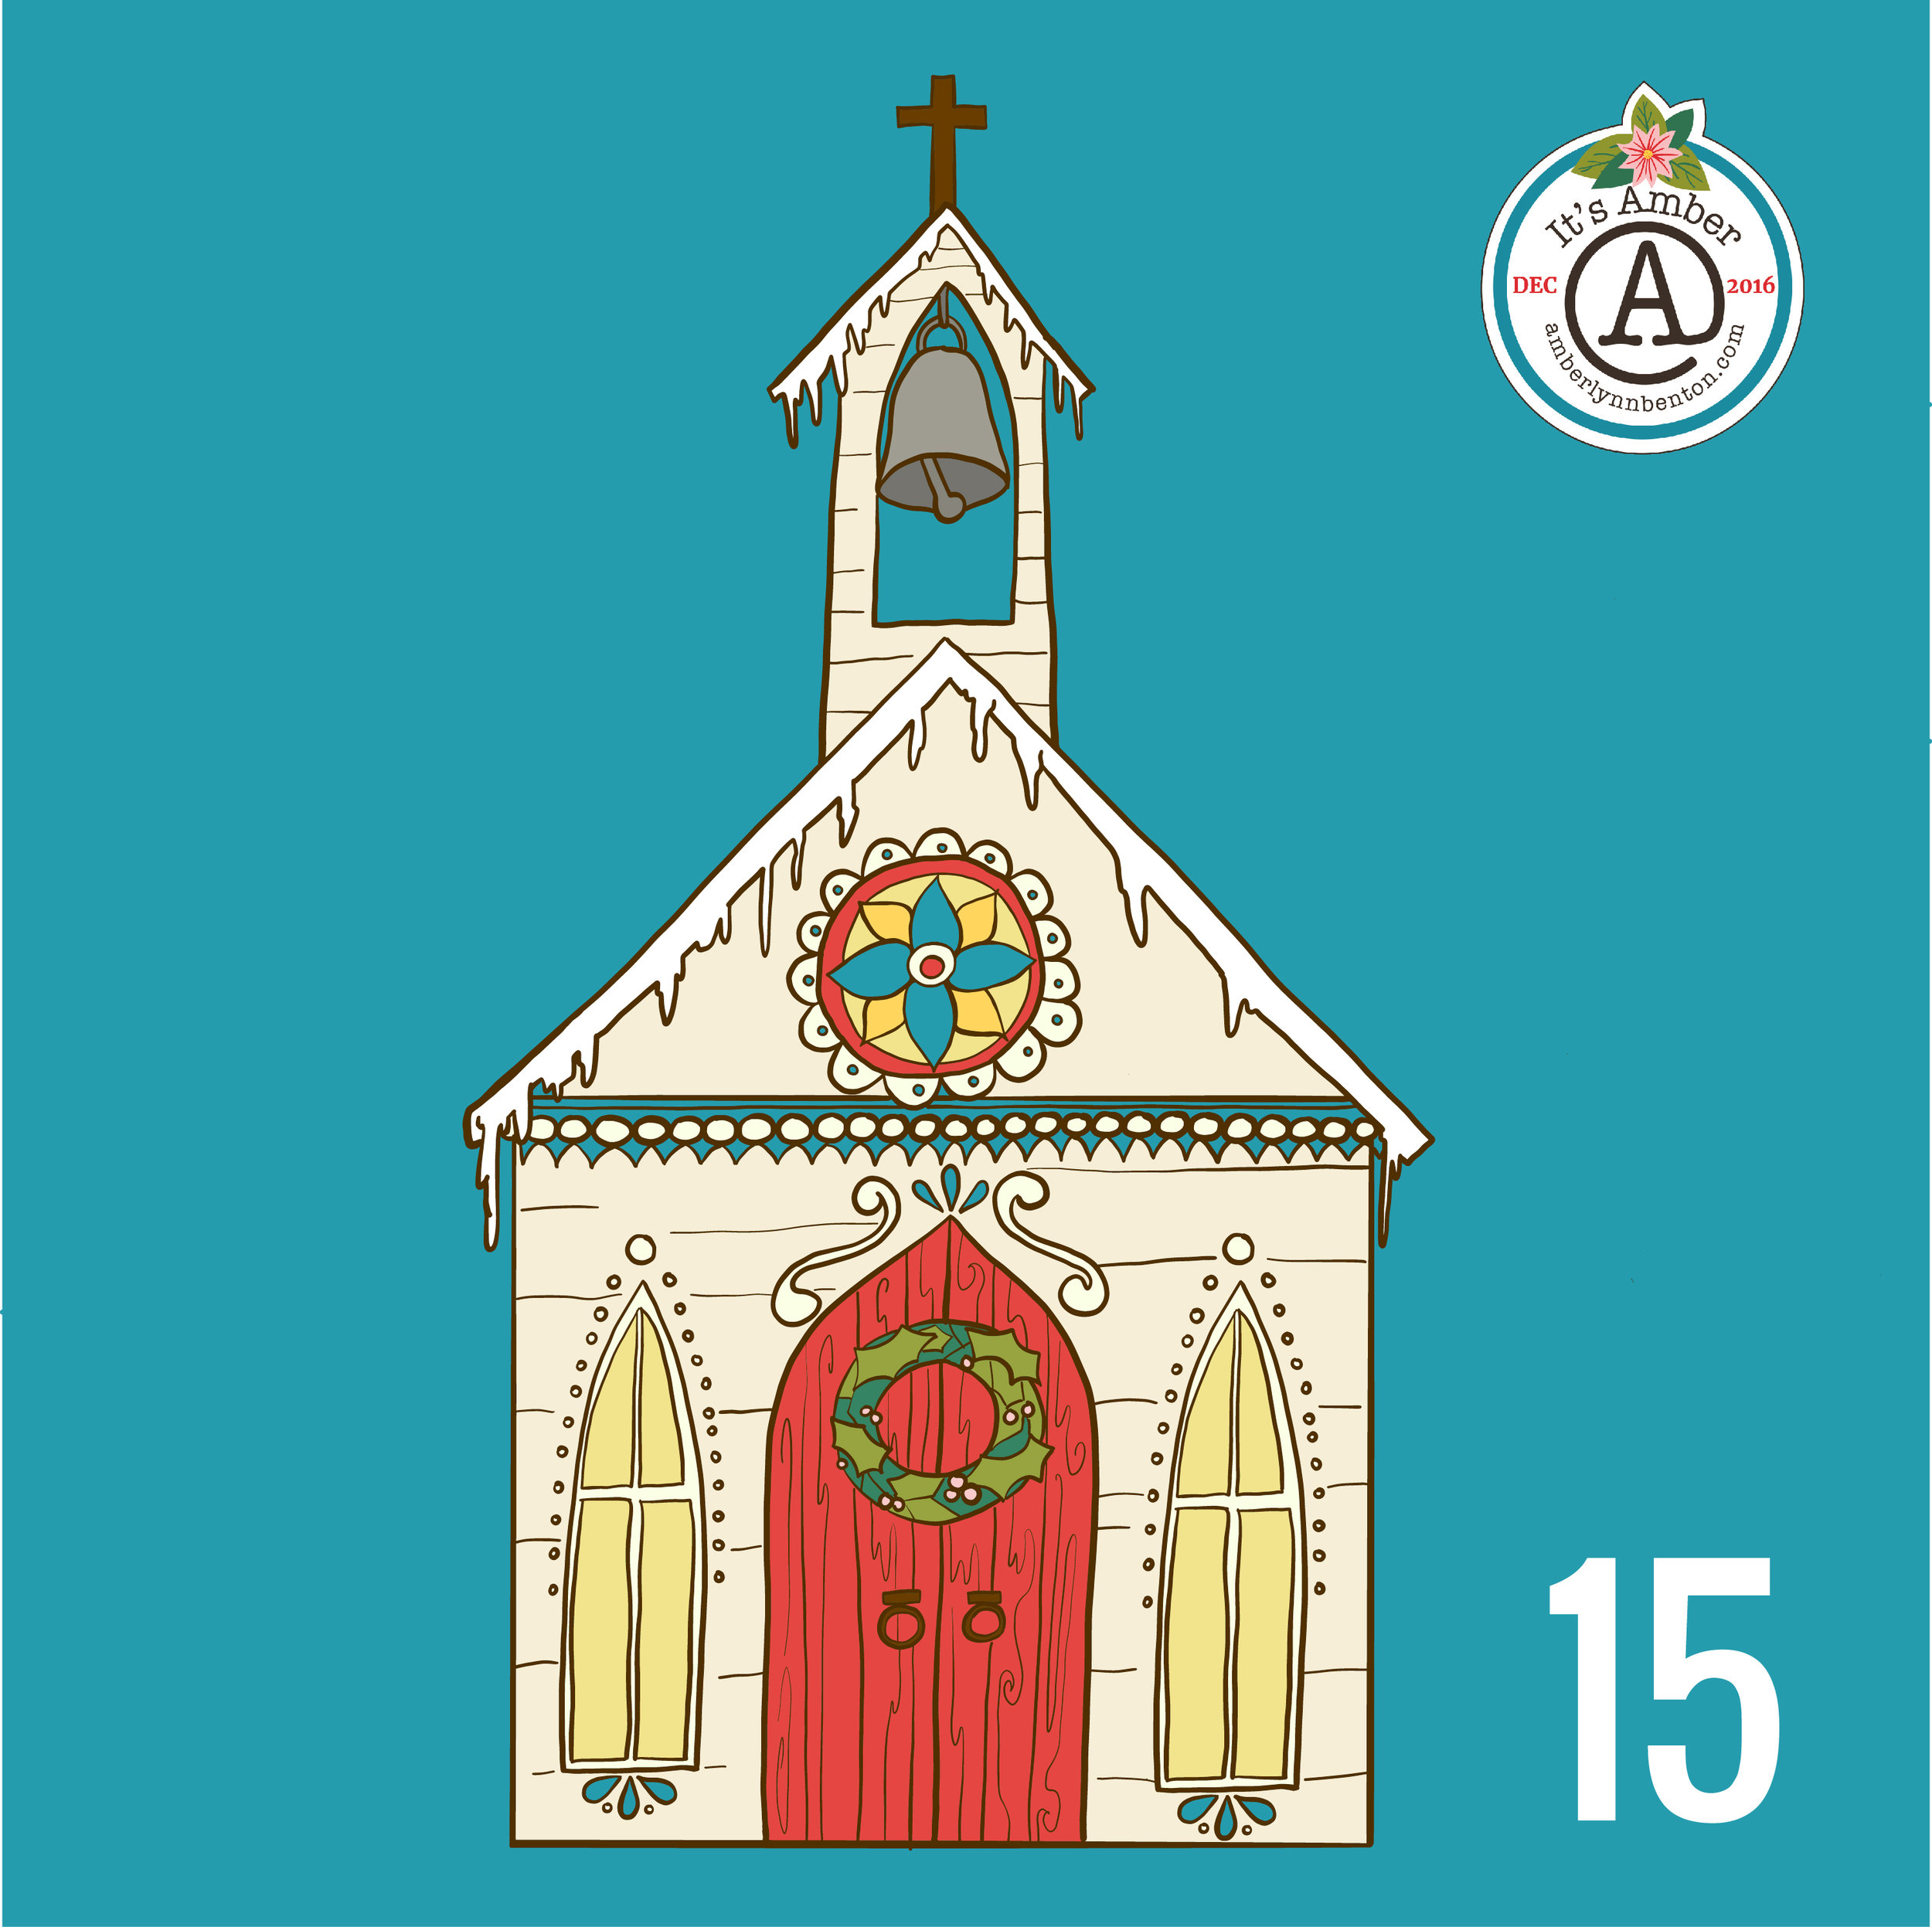 Small Country Church by Amber Lynn Benton for #ItsAdvent2016